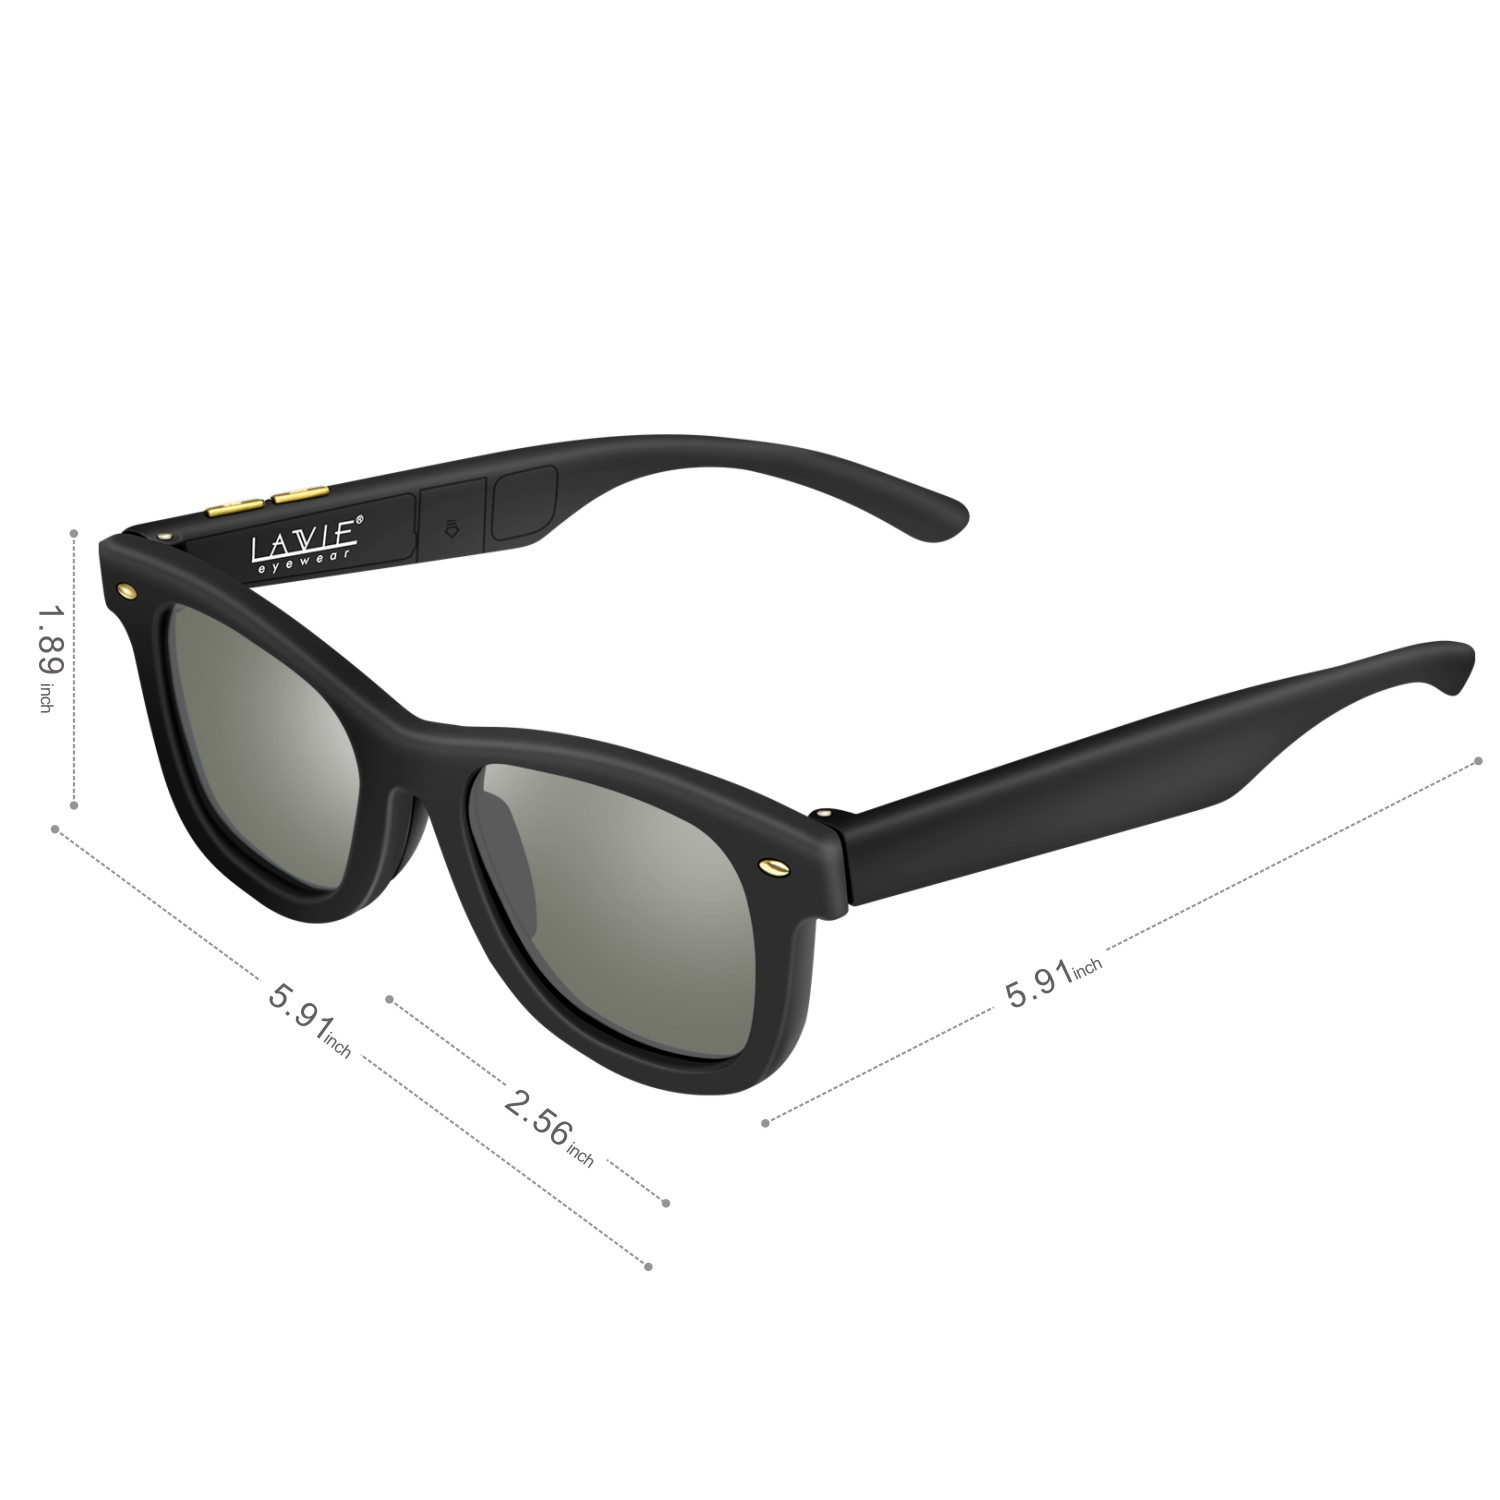 ac97cdd3c0 Dimming LCD Sunglasses 2019 NEW Original Designed Sunglasses LCD Polarized  Lenses Electronic Adjustable Darkness Sun Glasses